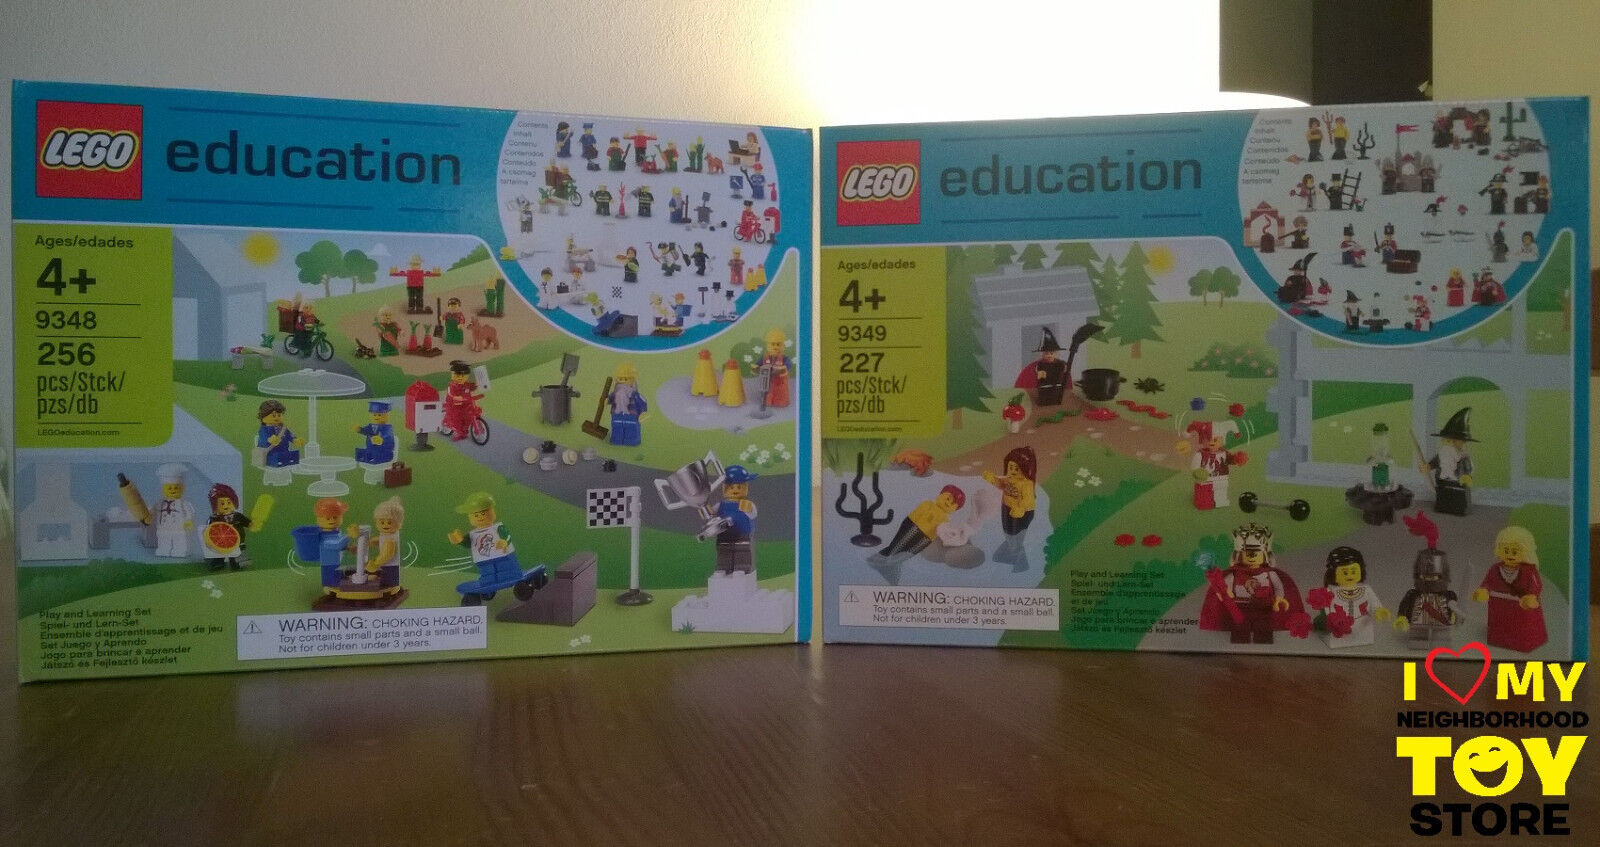 RETIrouge - LEGO 9348 9349 COMMUNITY, FAIRYTALE & HISTORIC EDUCATION (2011) - MISB